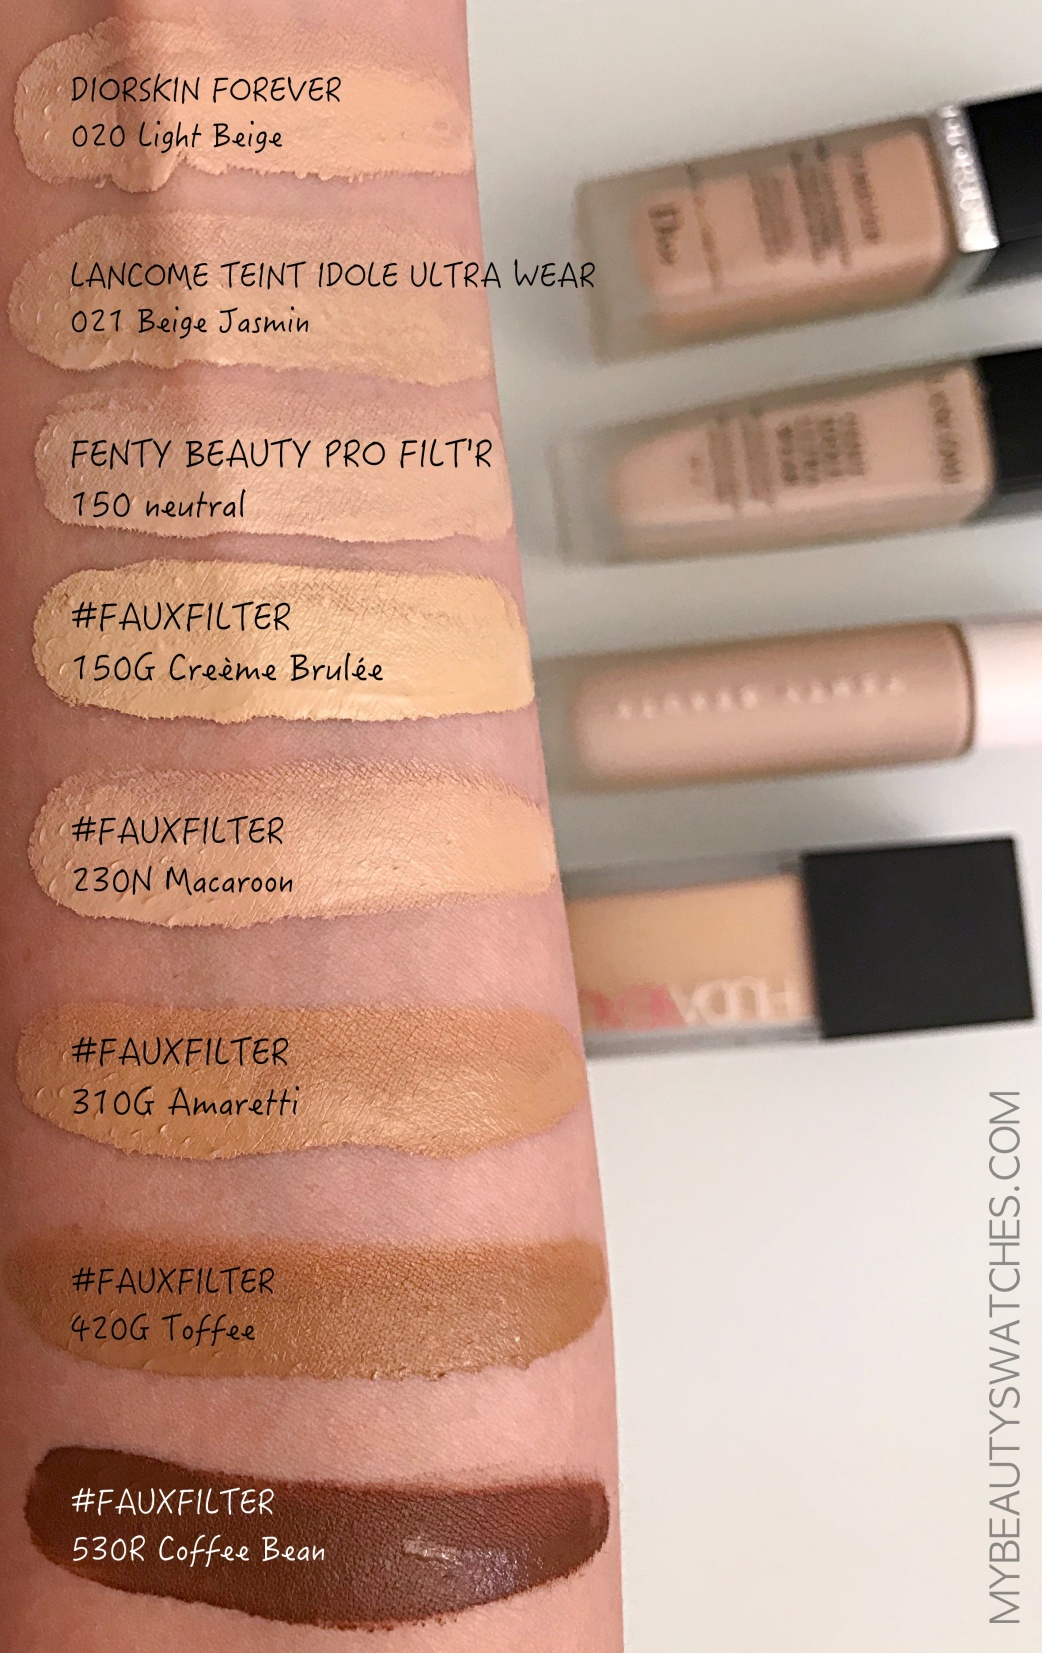 Huda Beauty_FauxFilter foundation swatches compa.jpg